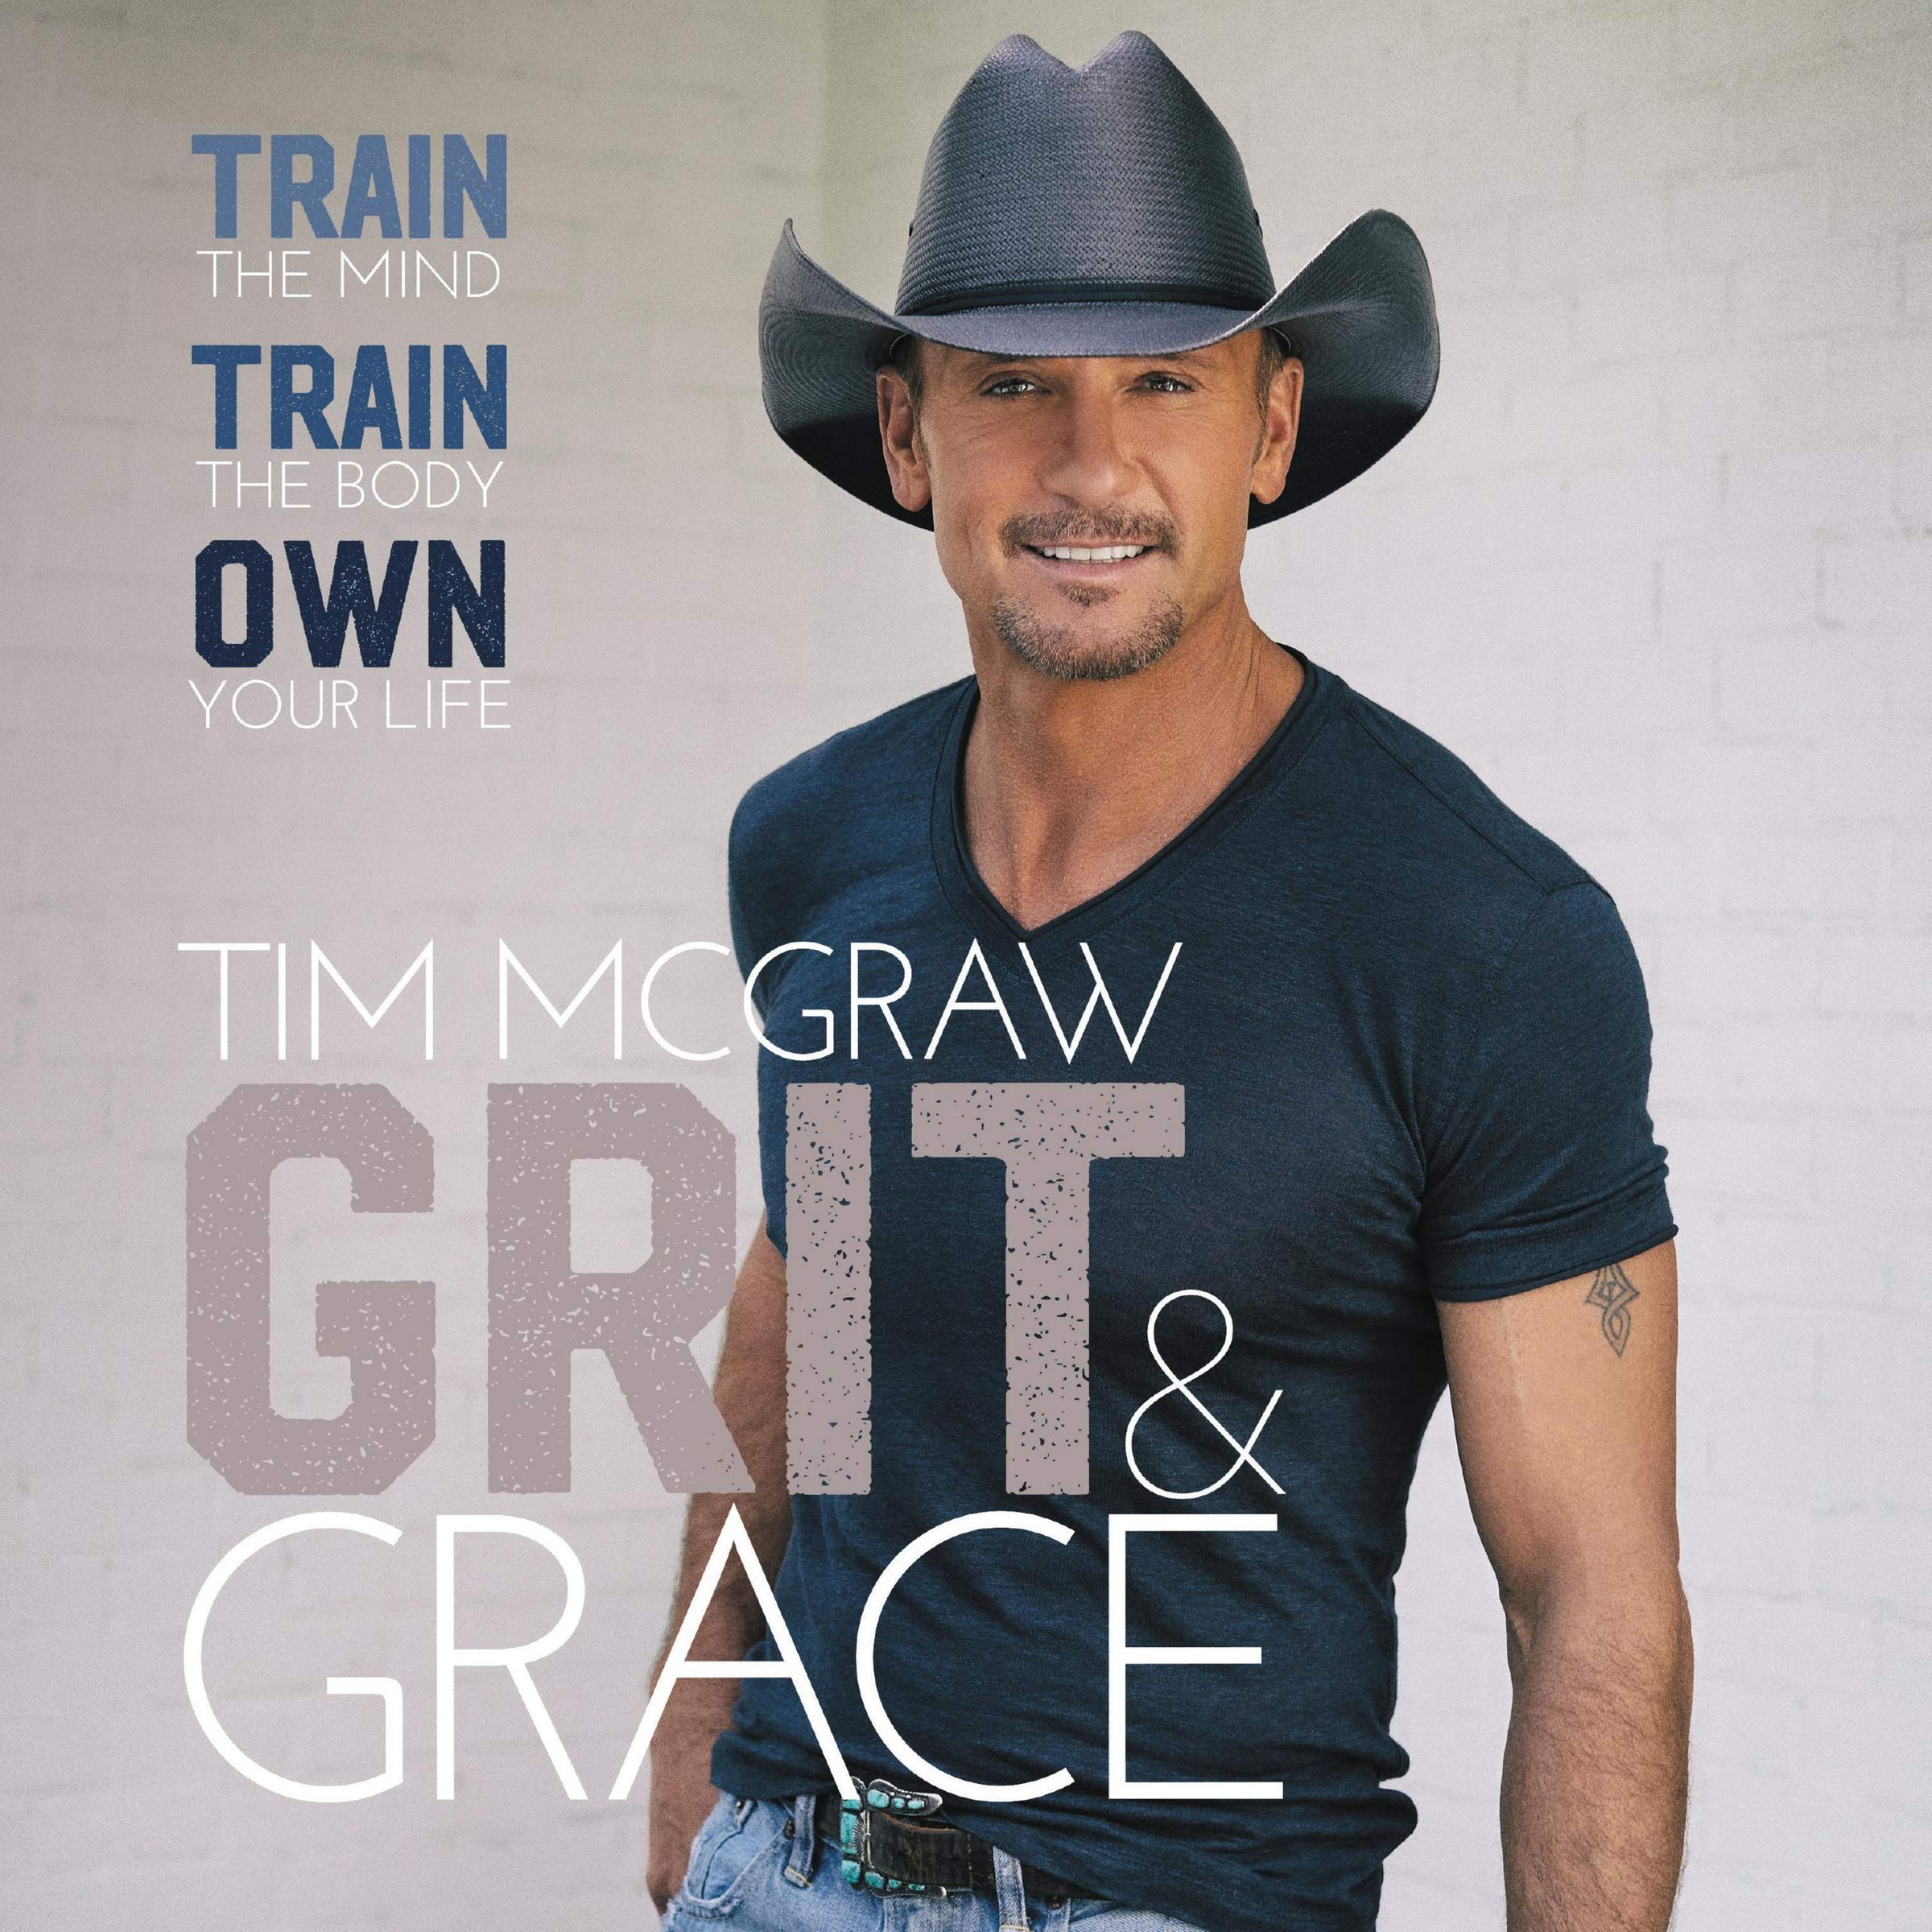 Image result for Grit & Grace: Train the Mind, Train the Body, Own Your Life Tim McGraw